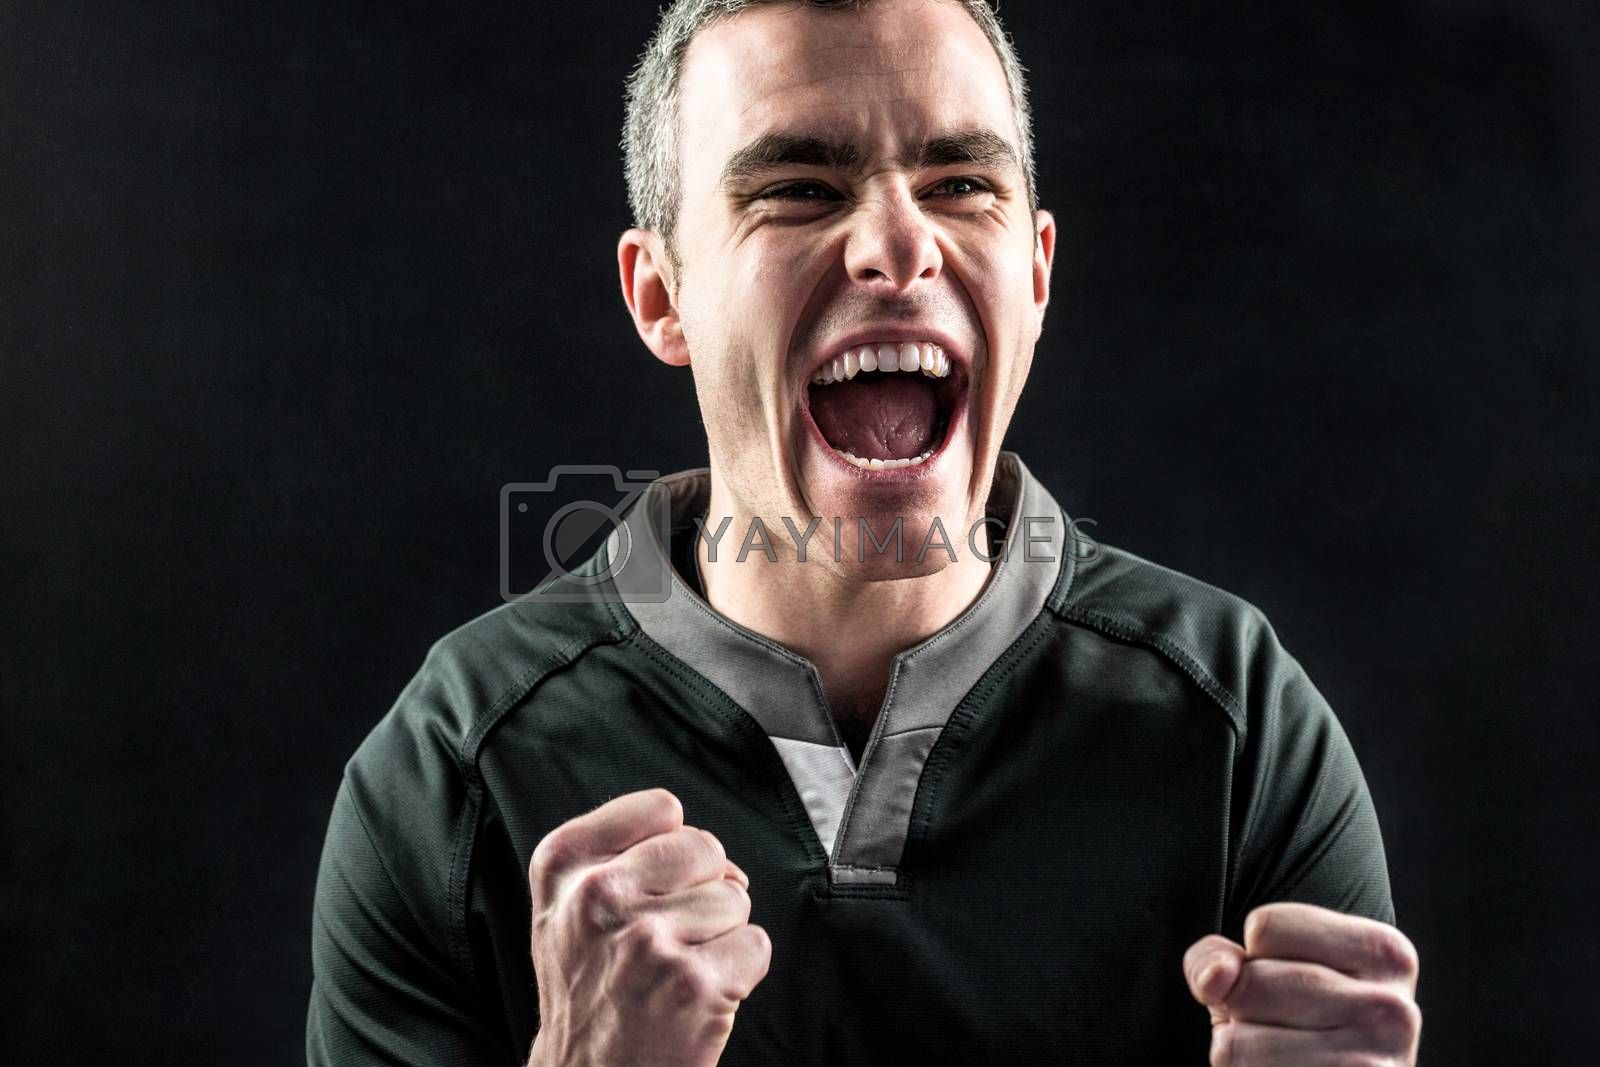 Royalty free image of Excited rugby player yelling out by Wavebreakmedia